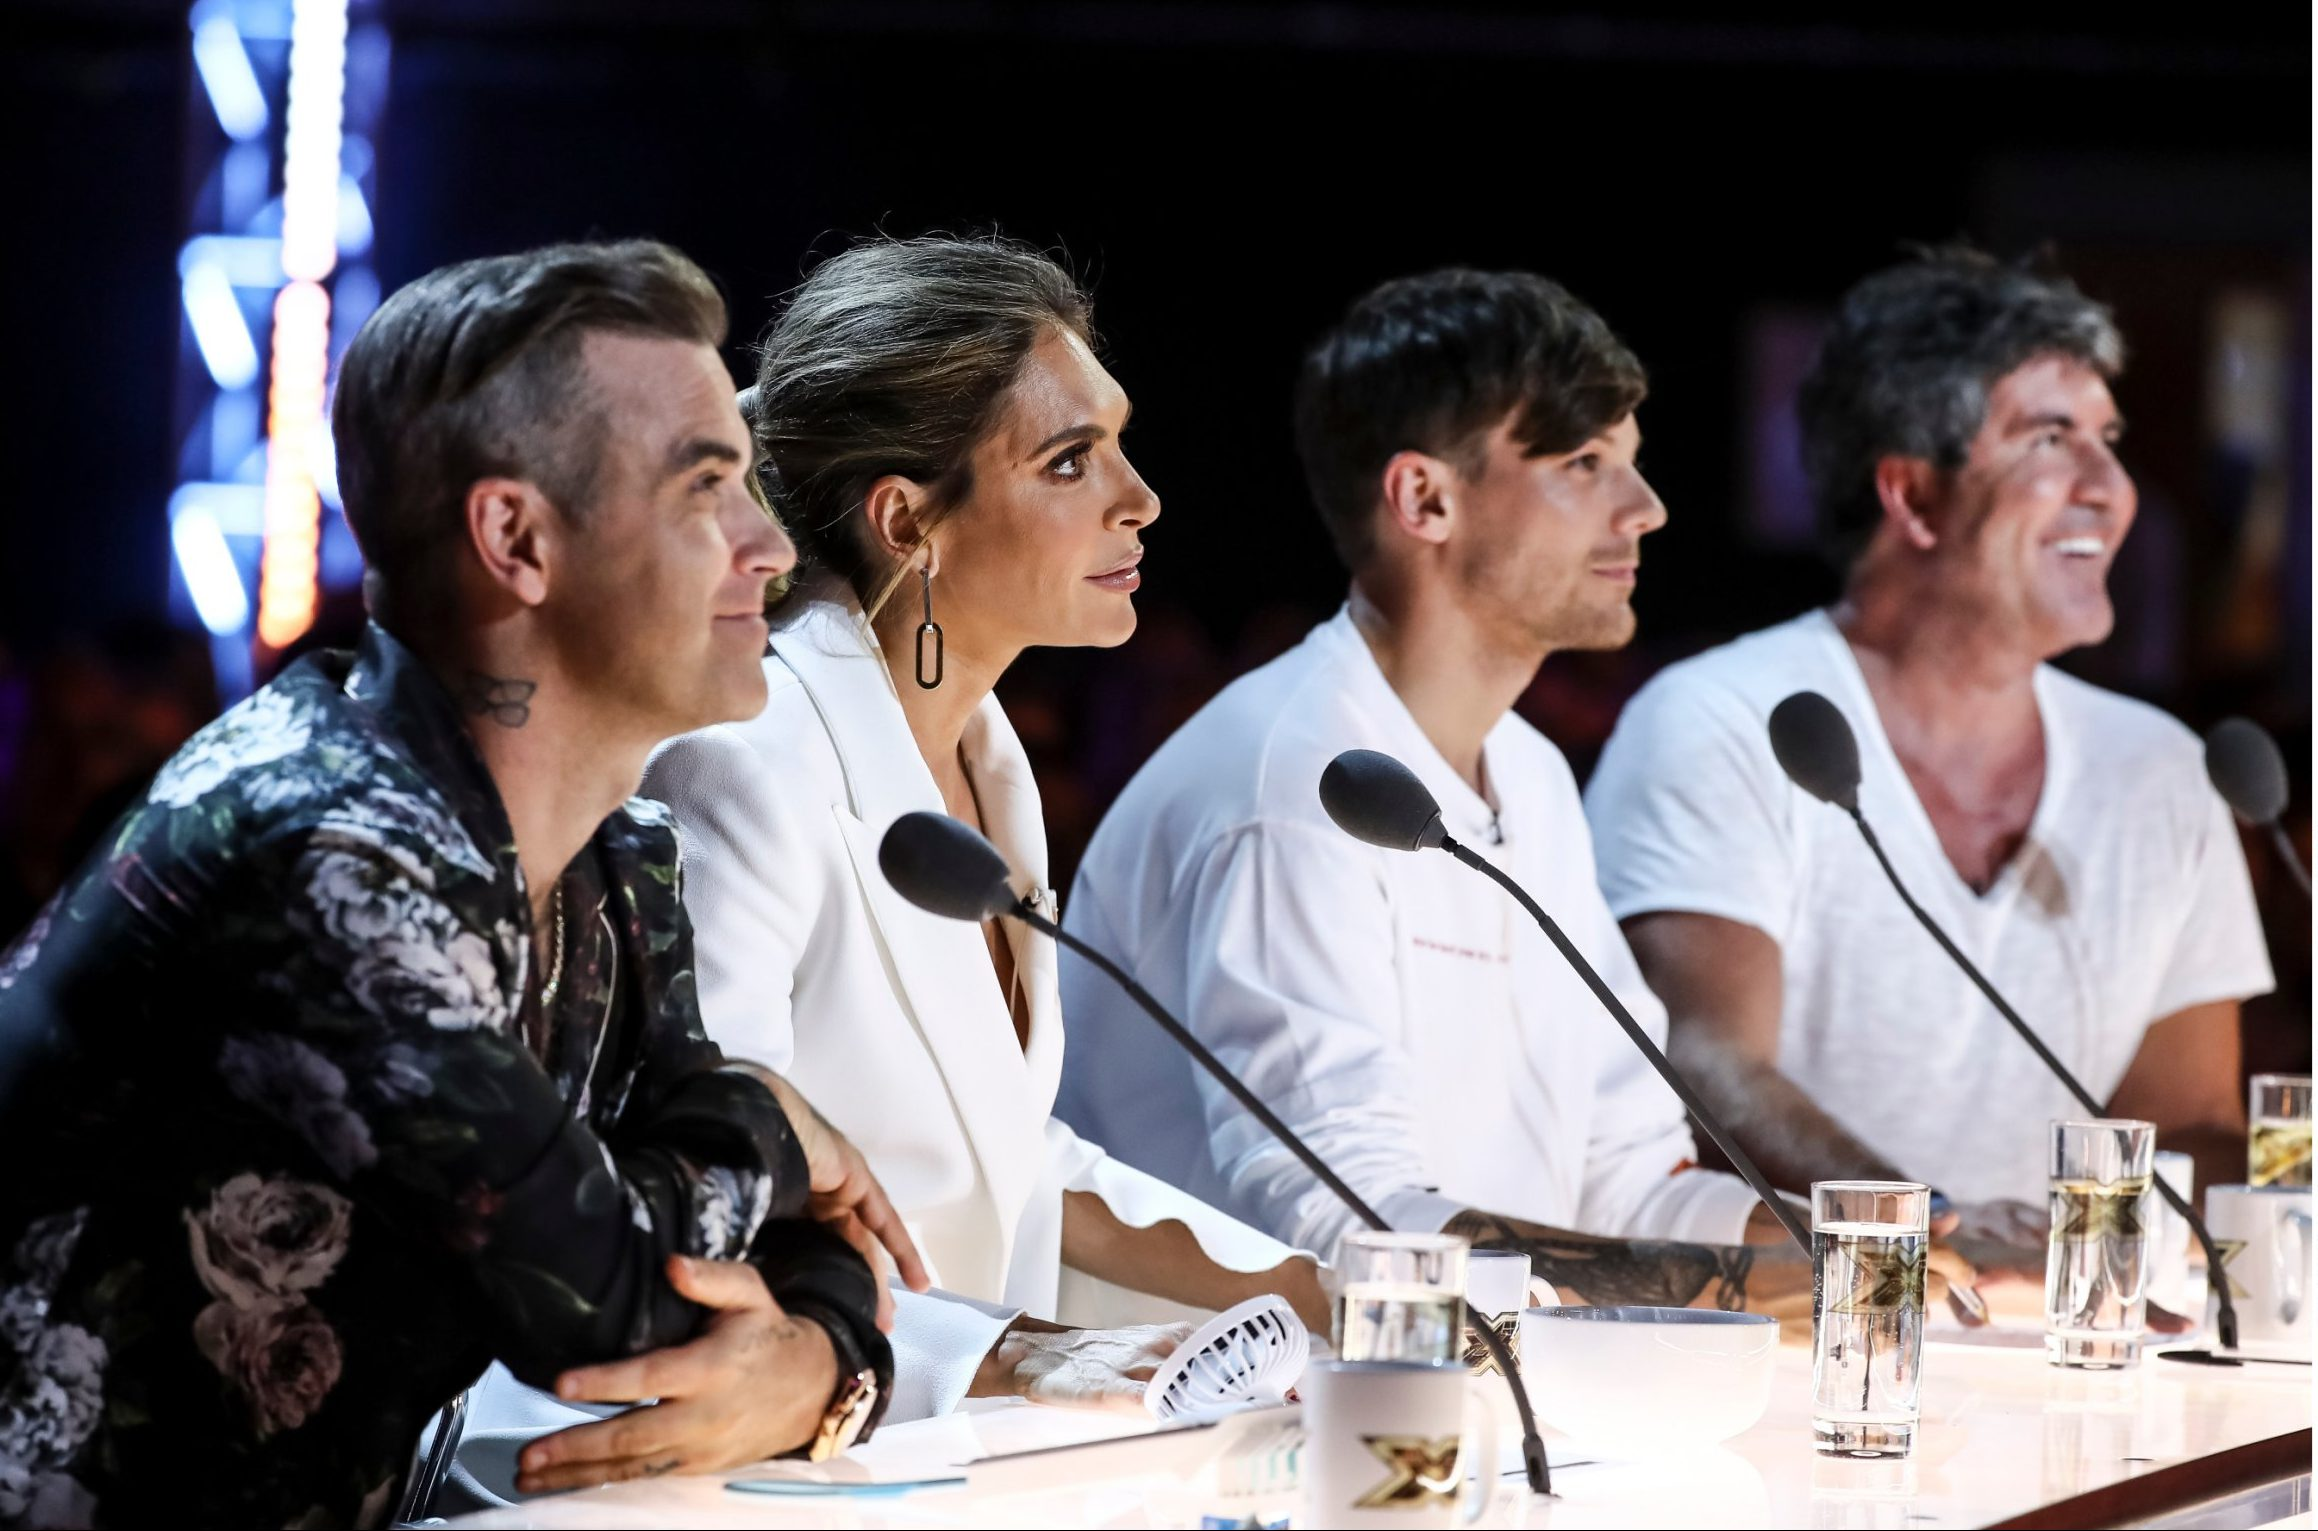 X Factor bosses 'threaten to sack staff' if they date contestants on the show